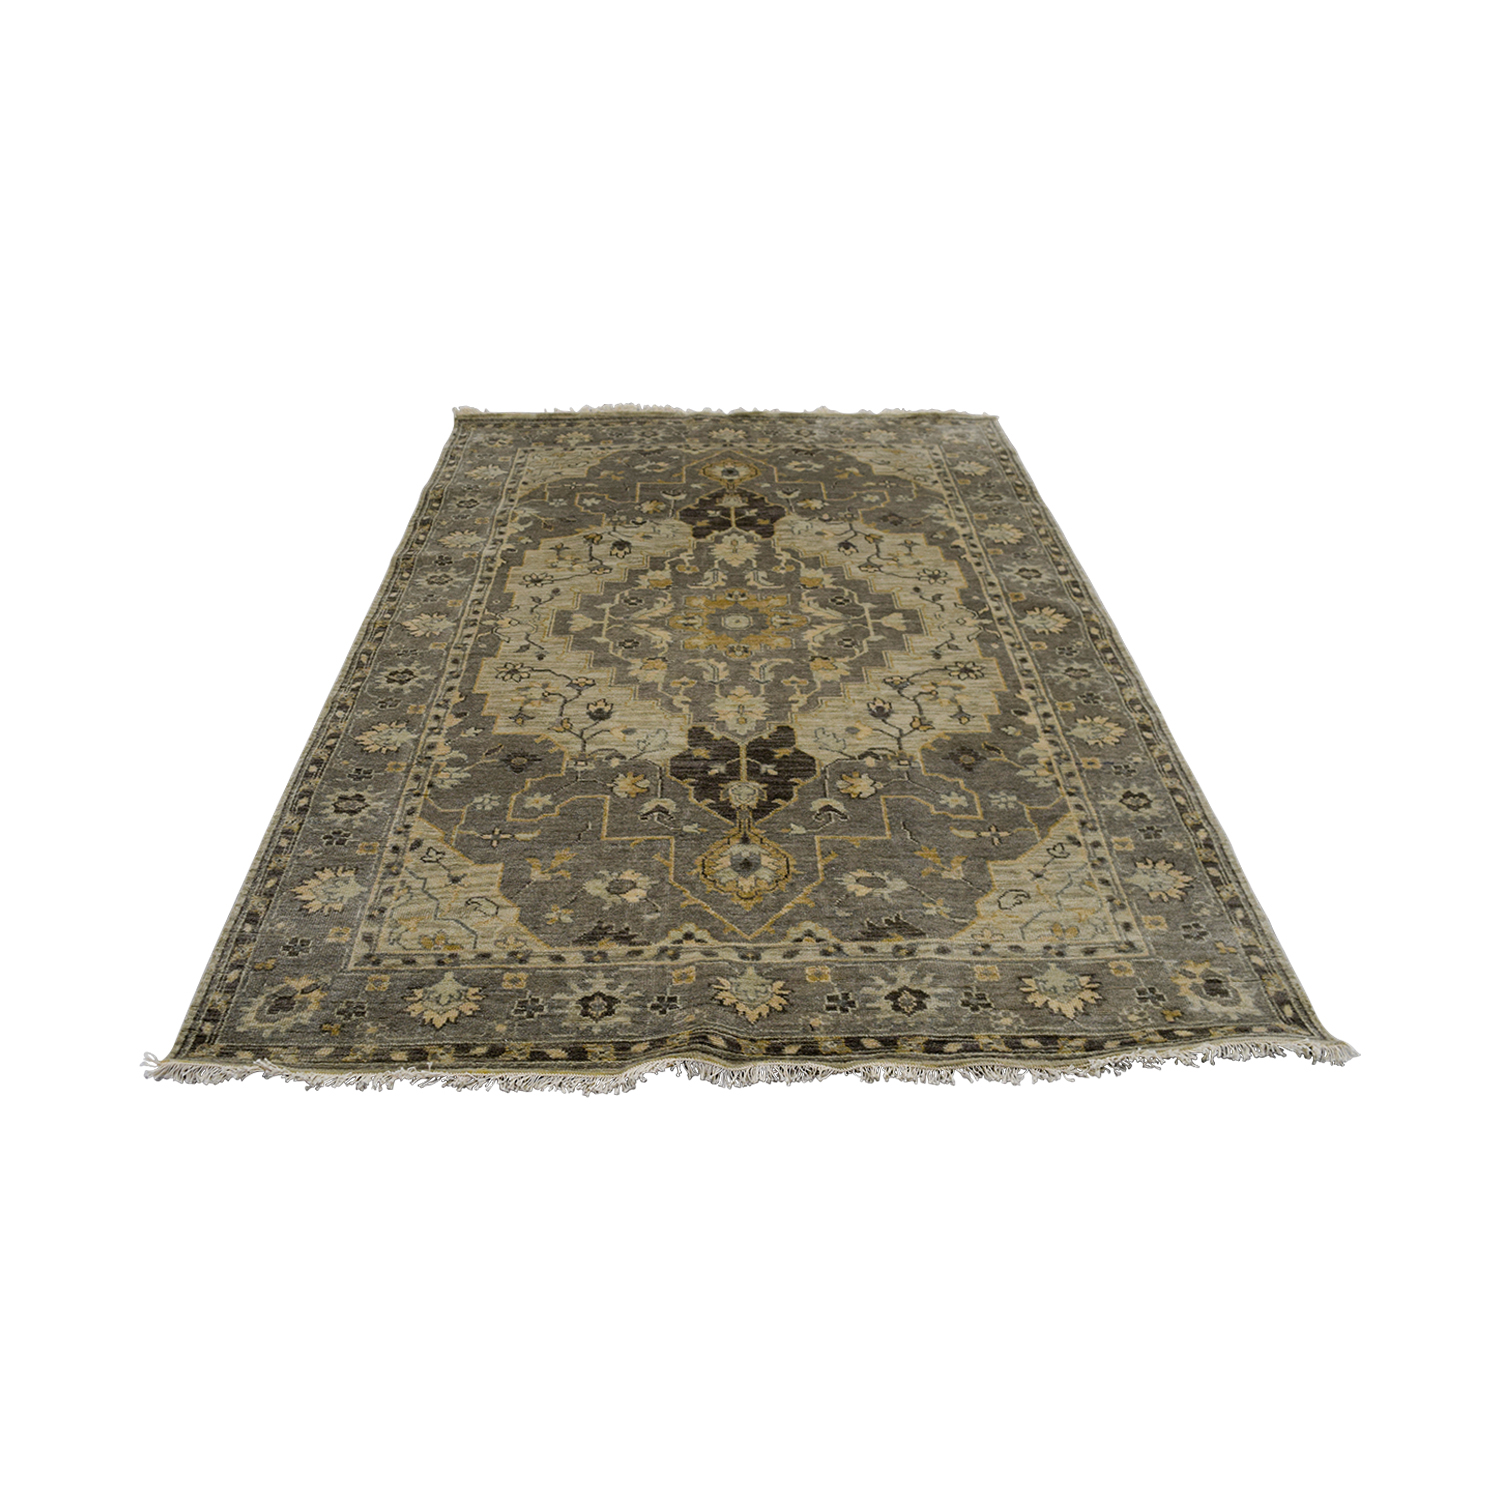 Obeetee Obeetee Hand Knotted Gray Wool Rug used